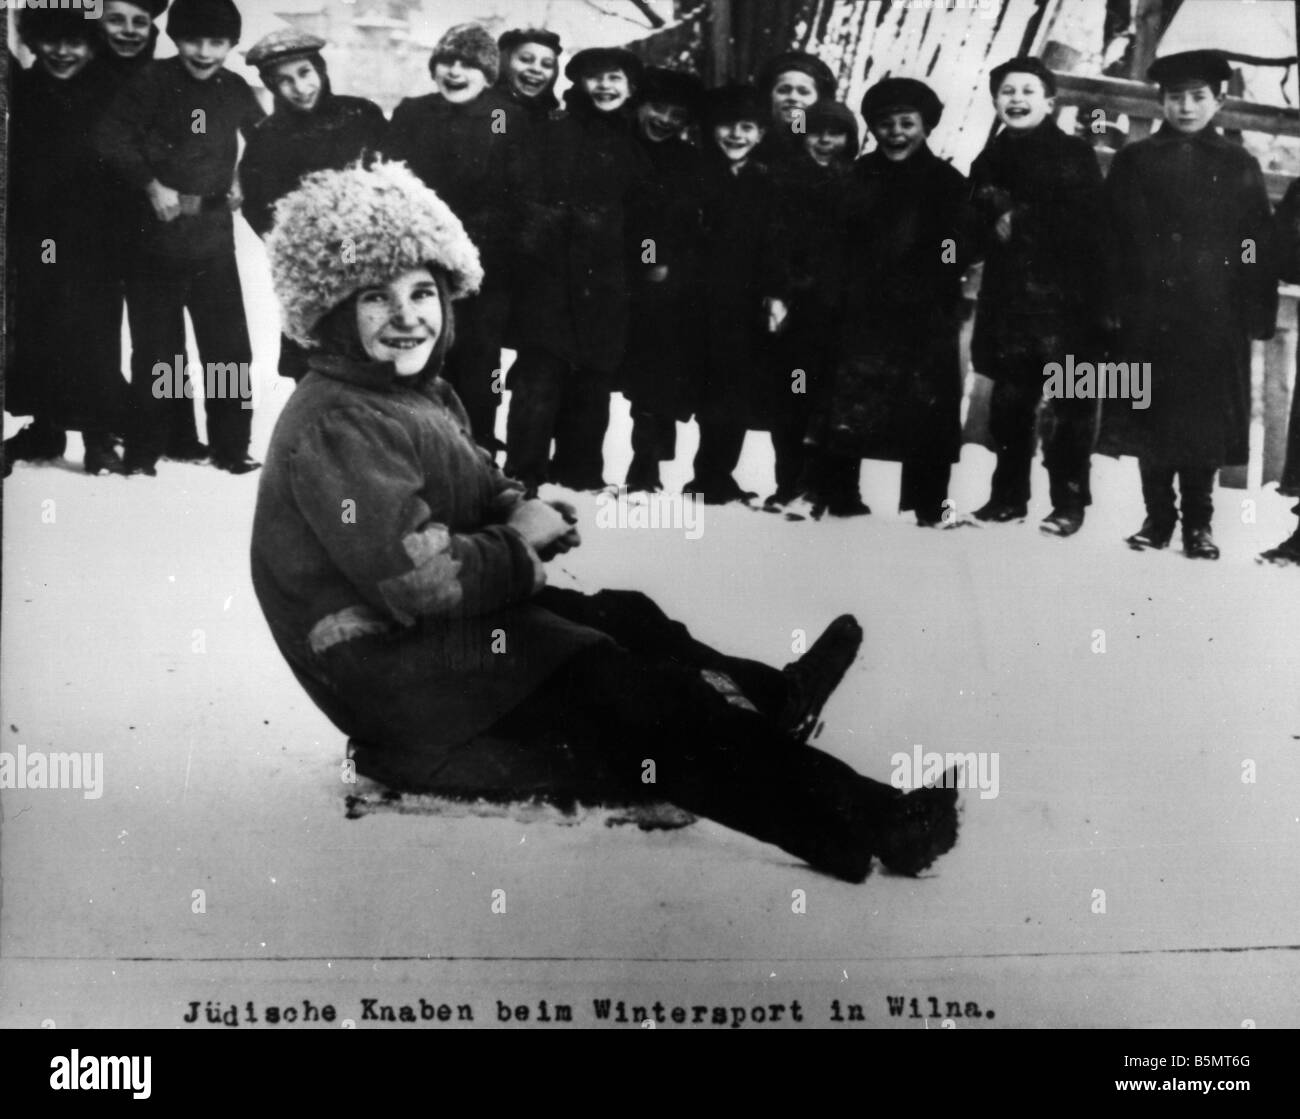 9IS 1915 0 0 A1 20 Jewish boys and winter sport 1915 History of Judaism Eastern Jews Jewish boys and winter sport - Stock Image